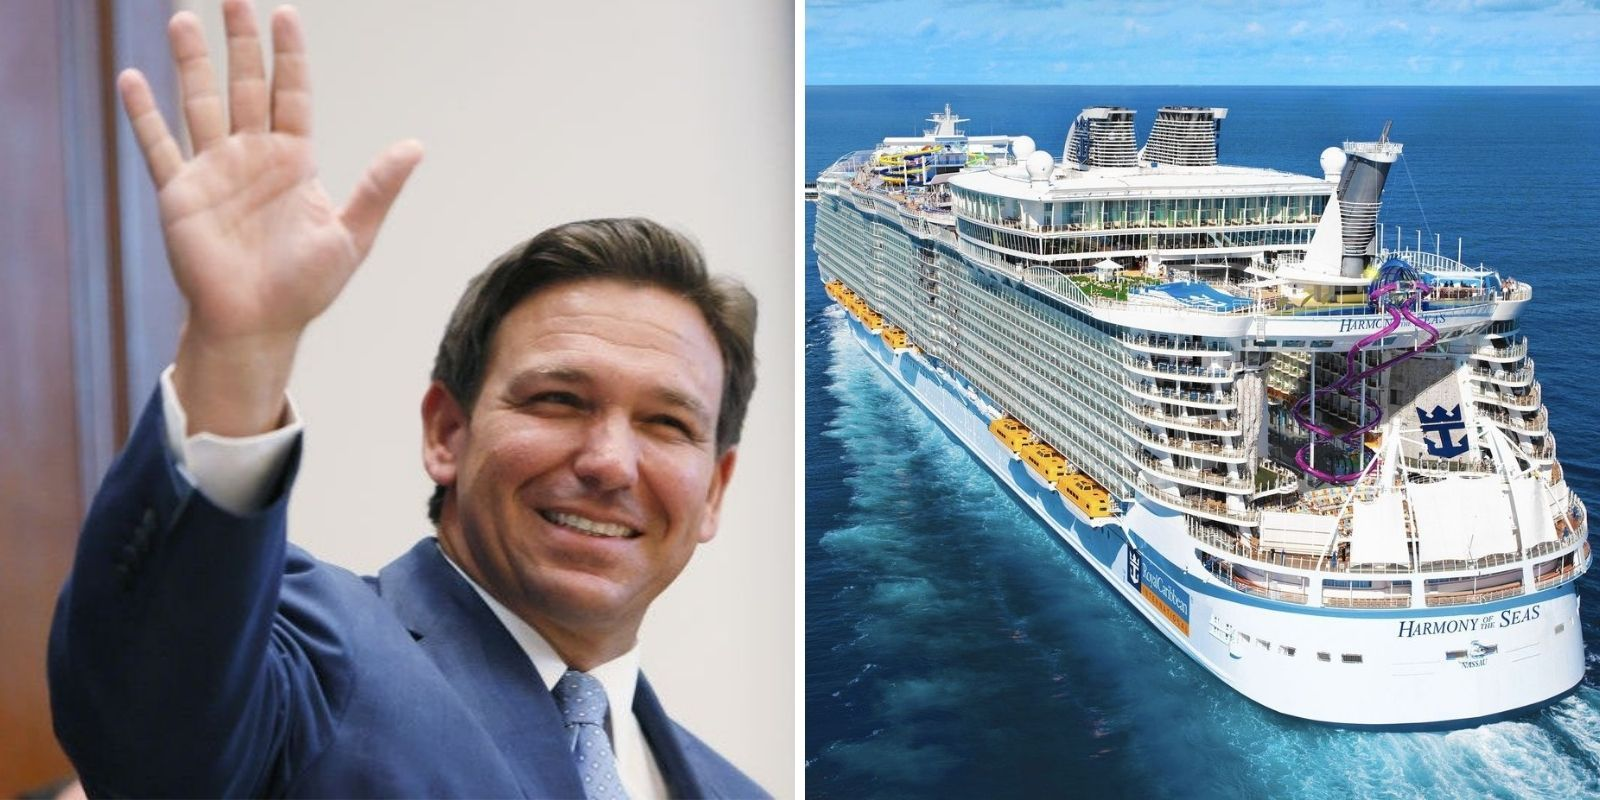 Federal appeals court sides with DeSantis, lifts CDC cruise ship restrictions